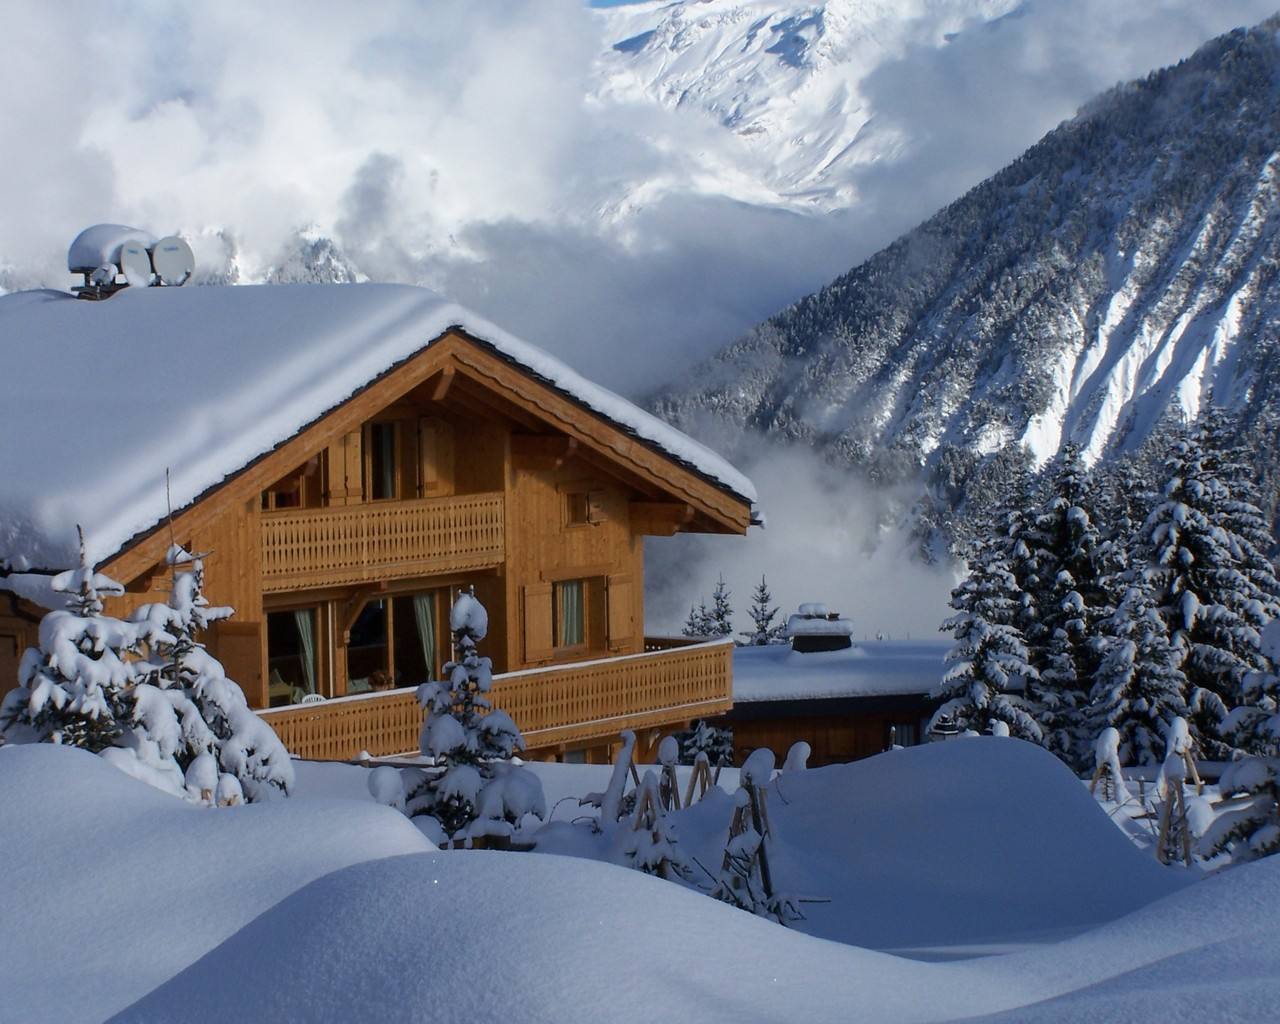 Mountain Cabin in Winter